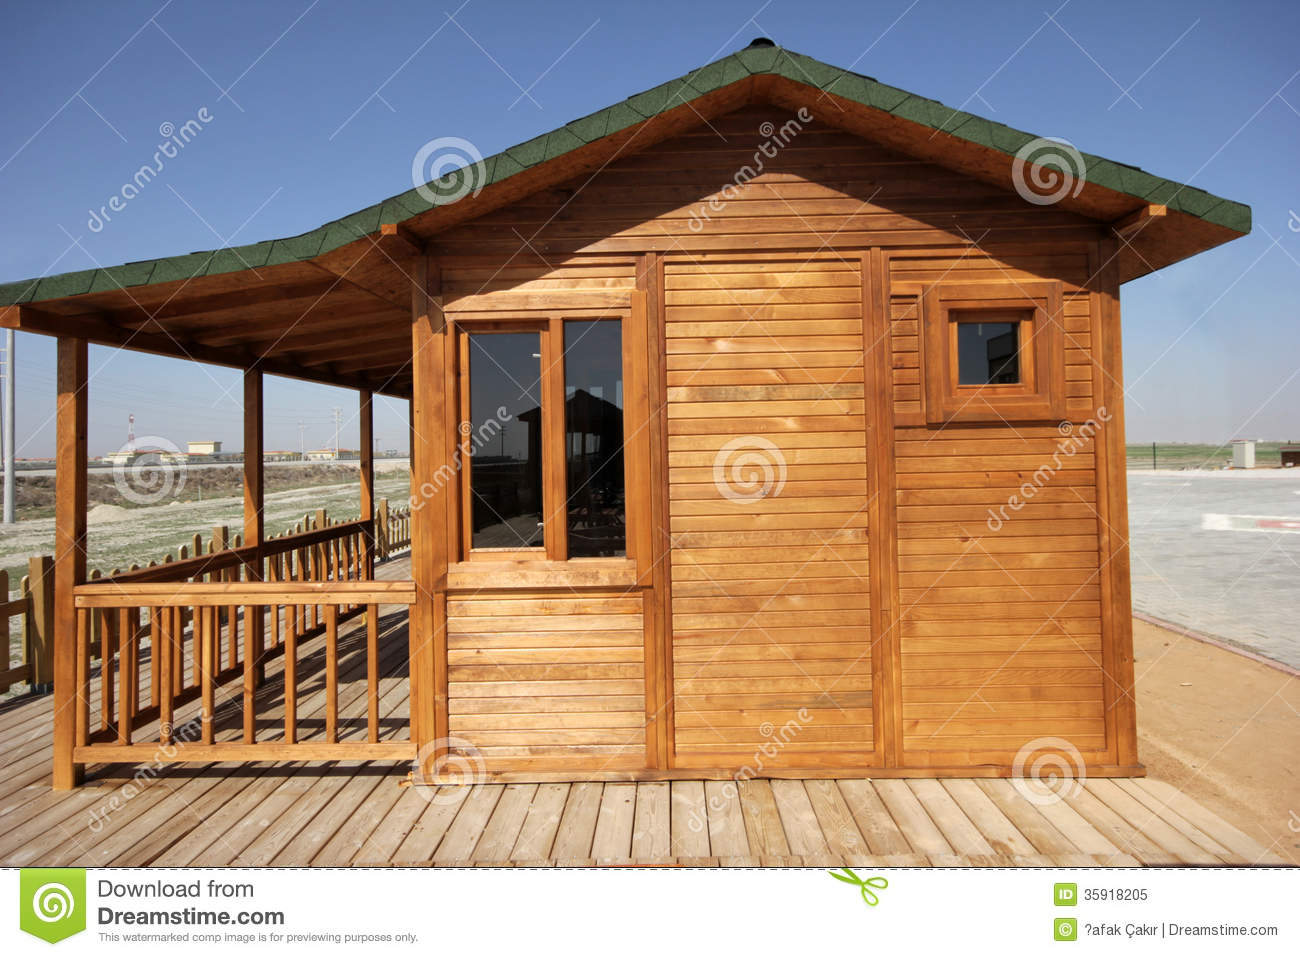 Wooden houses royalty free stock photo image 35918205 for Wood house images